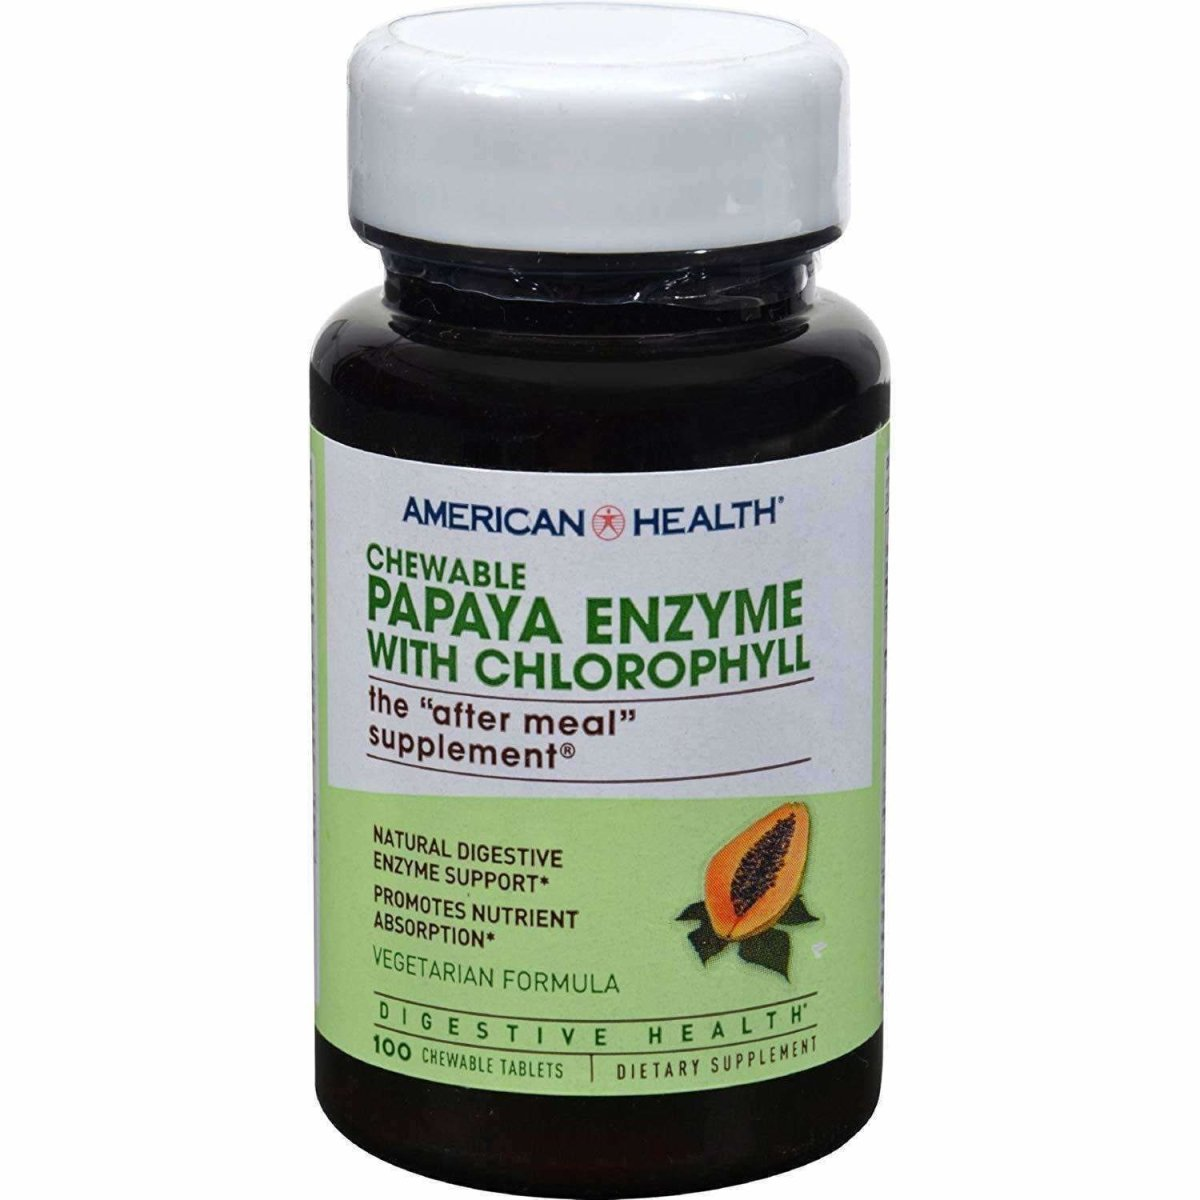 Papaya Enzyme with Chlorophyll - 100 Chewable Tablets